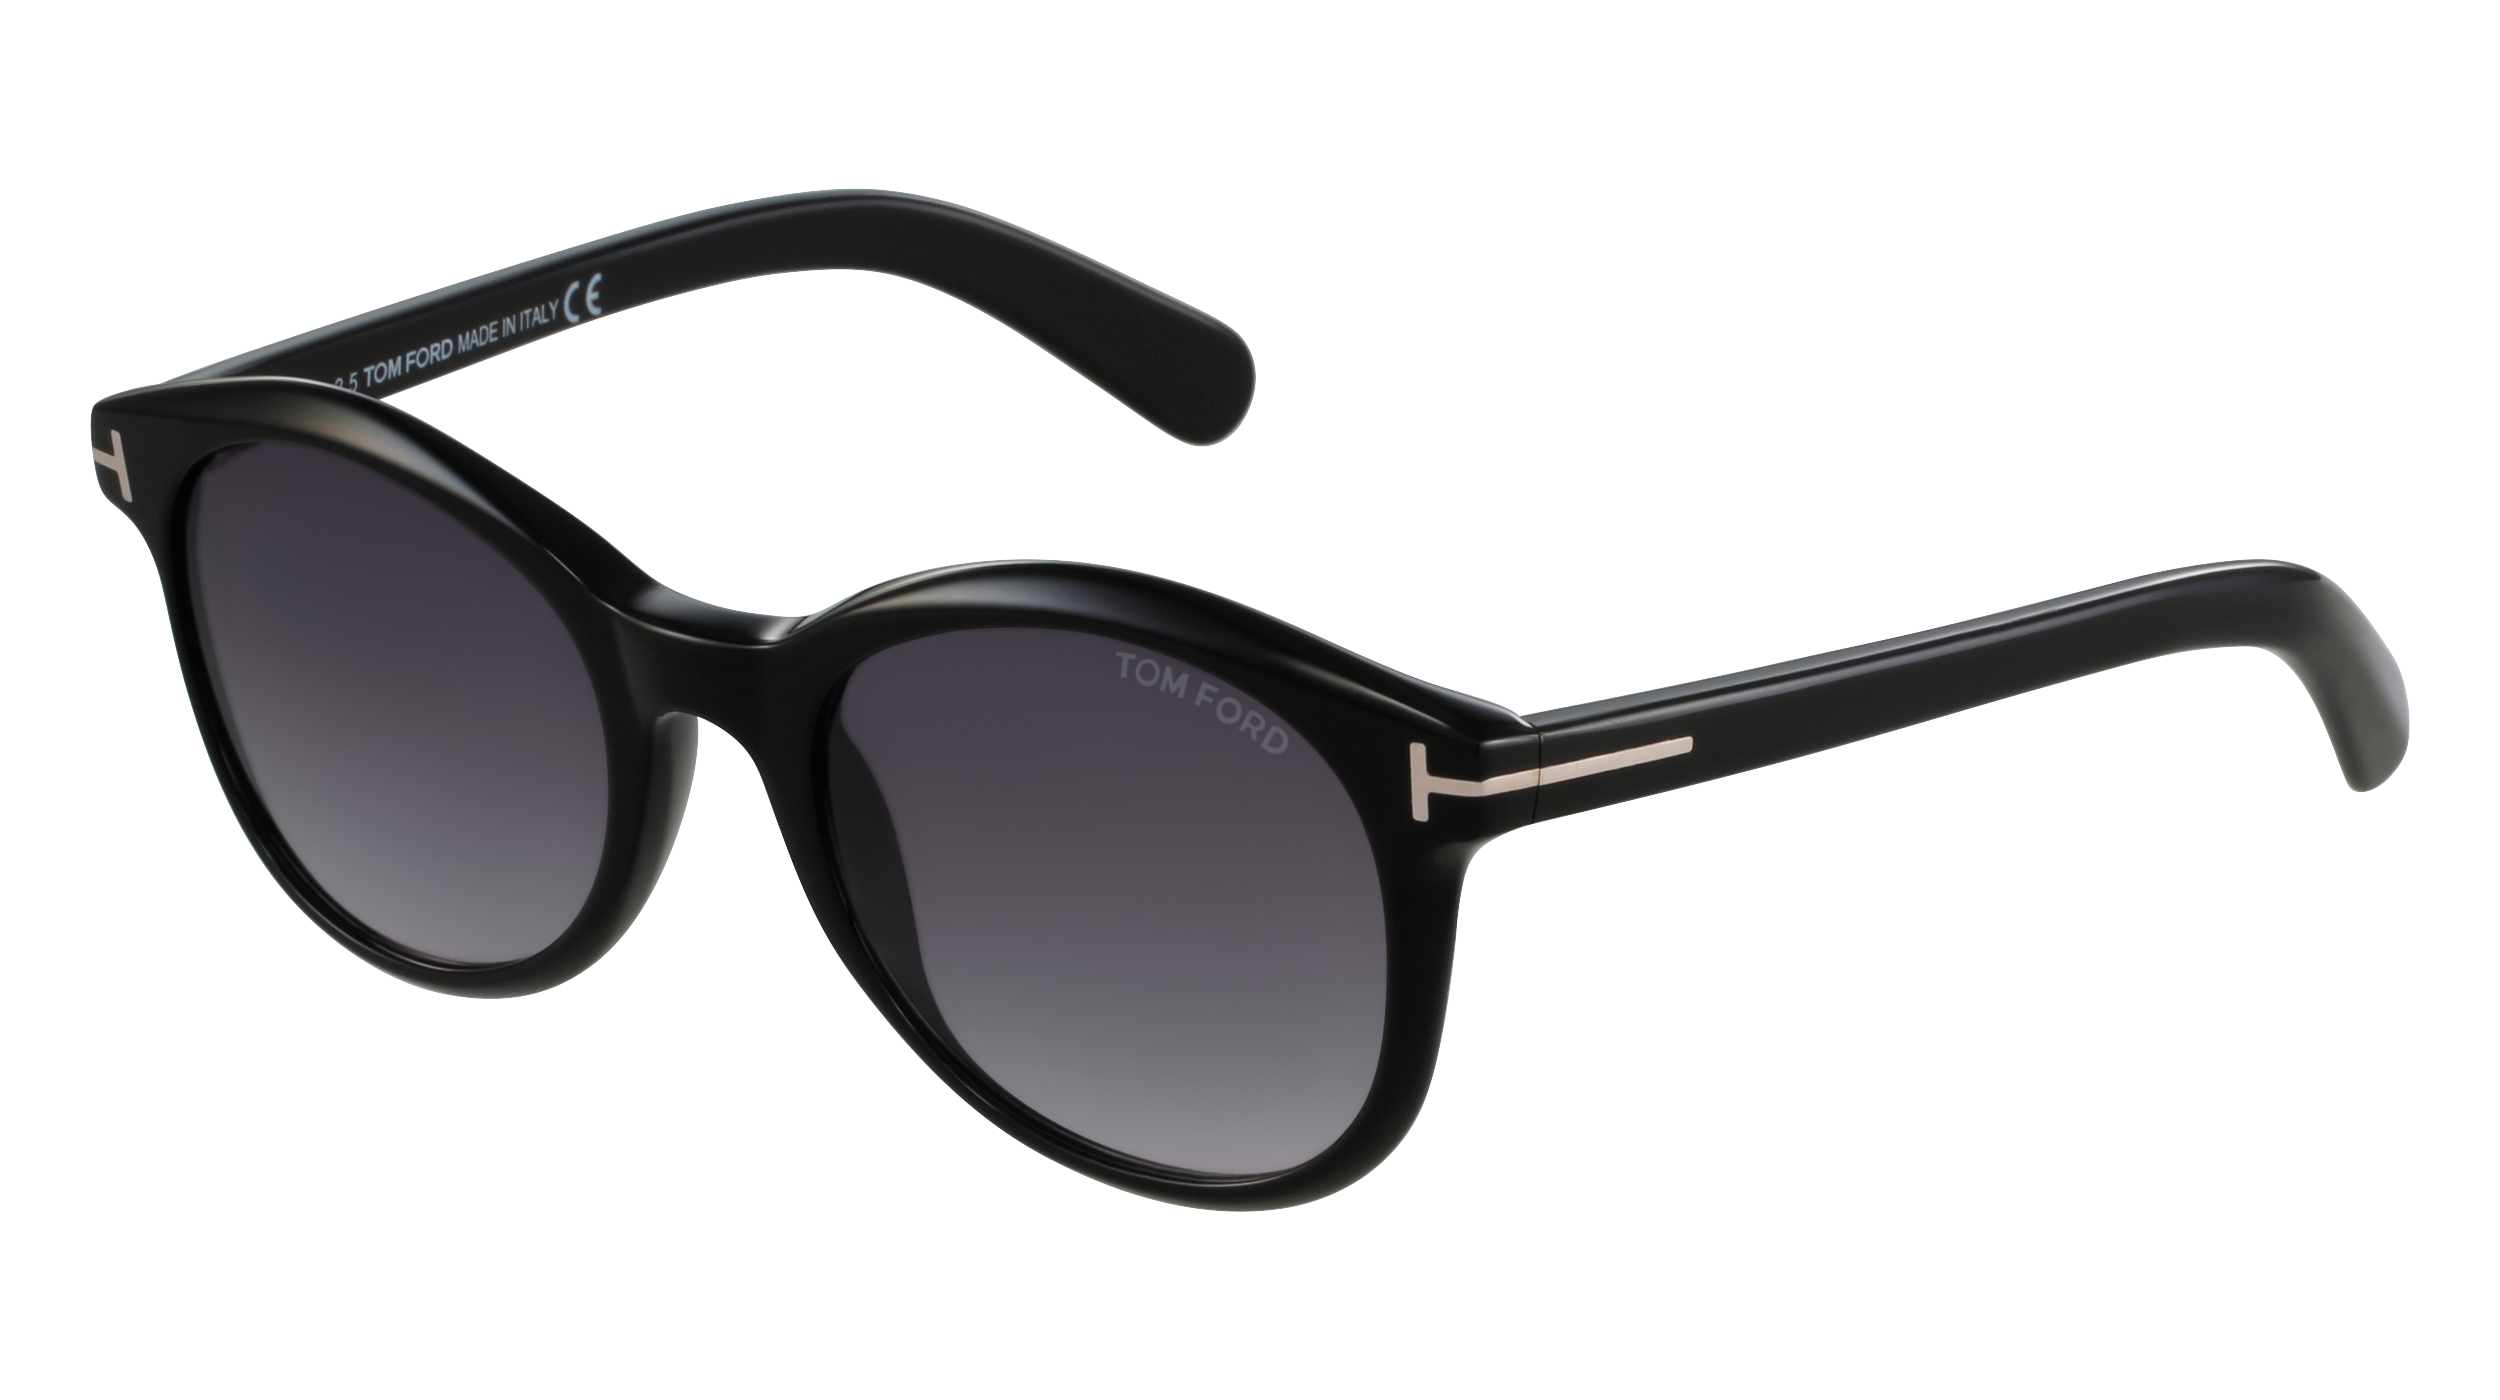 Tom Ford FT0298-S-01B-51-19-140